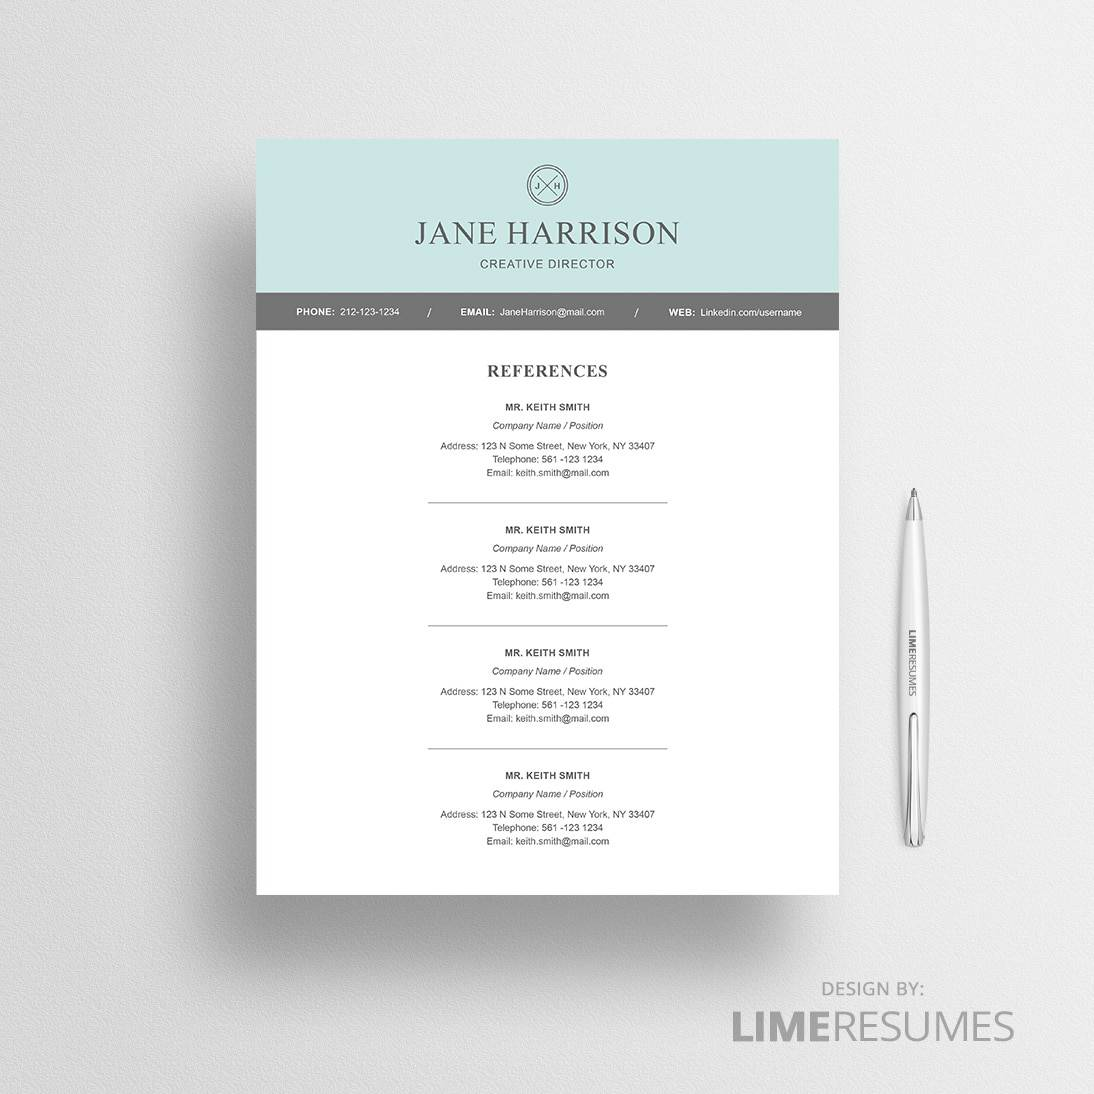 professional references for a resume template